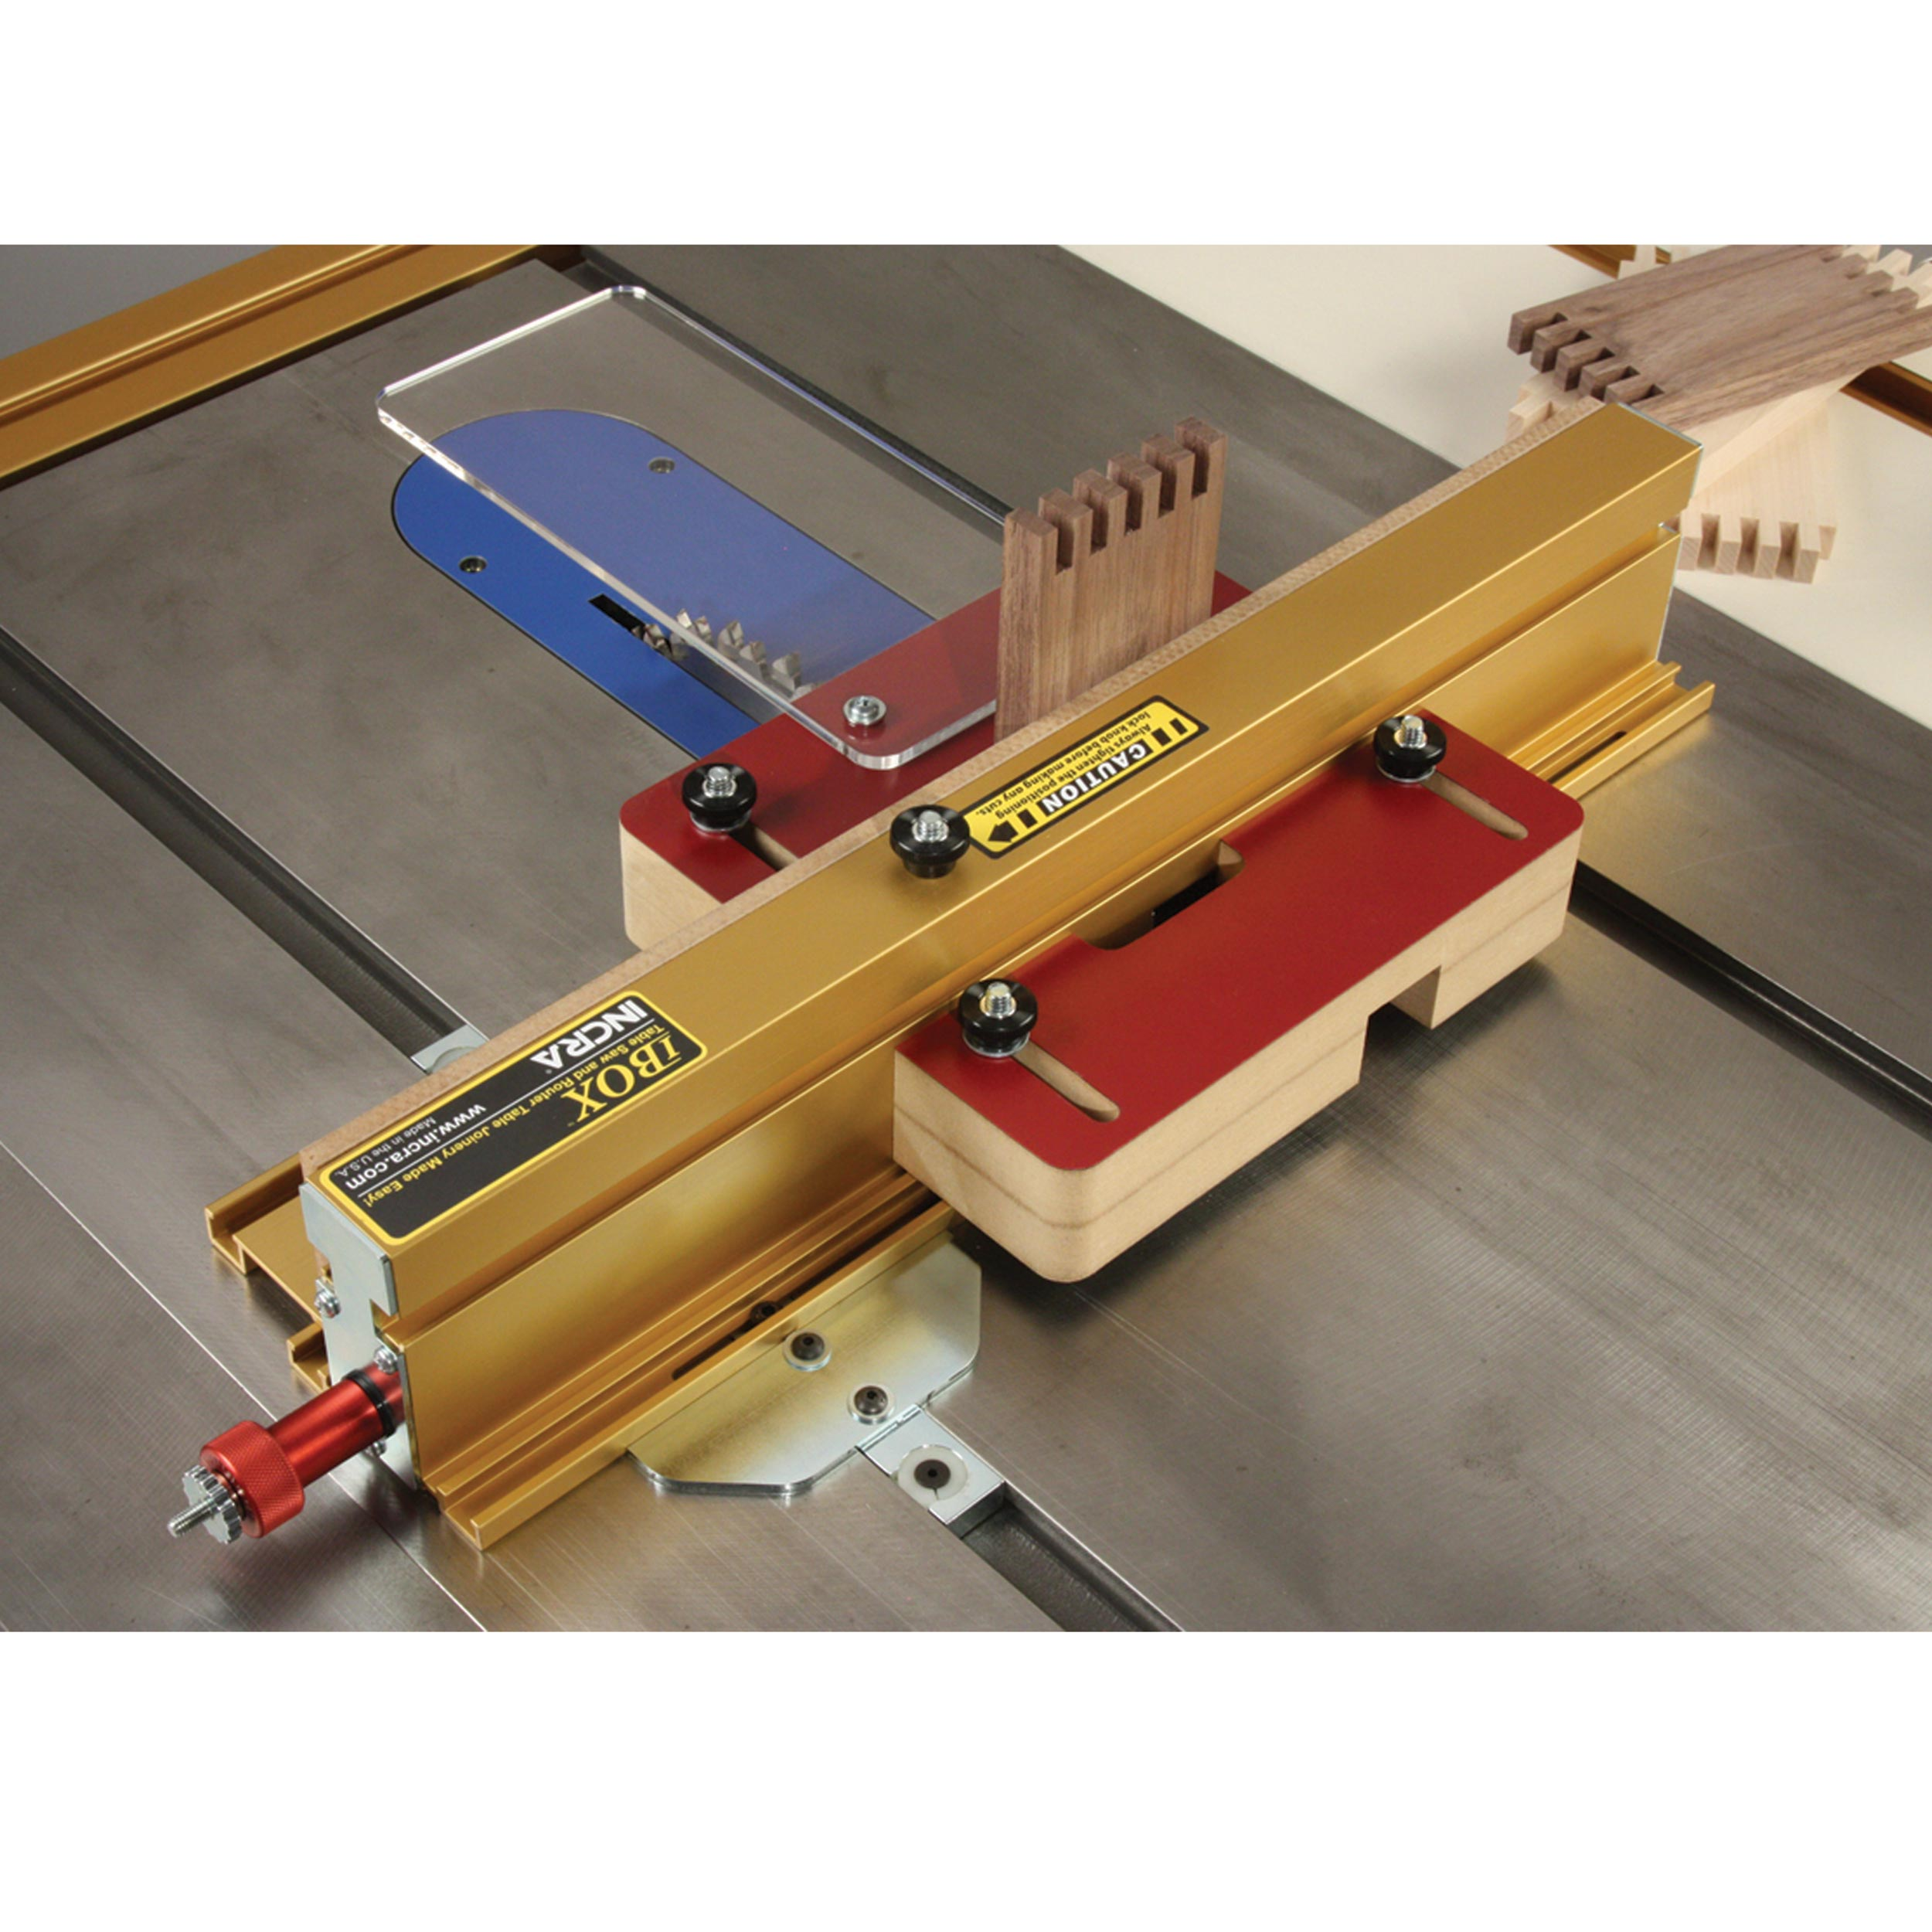 IBox Jig For Box Joints, Model#  IBox